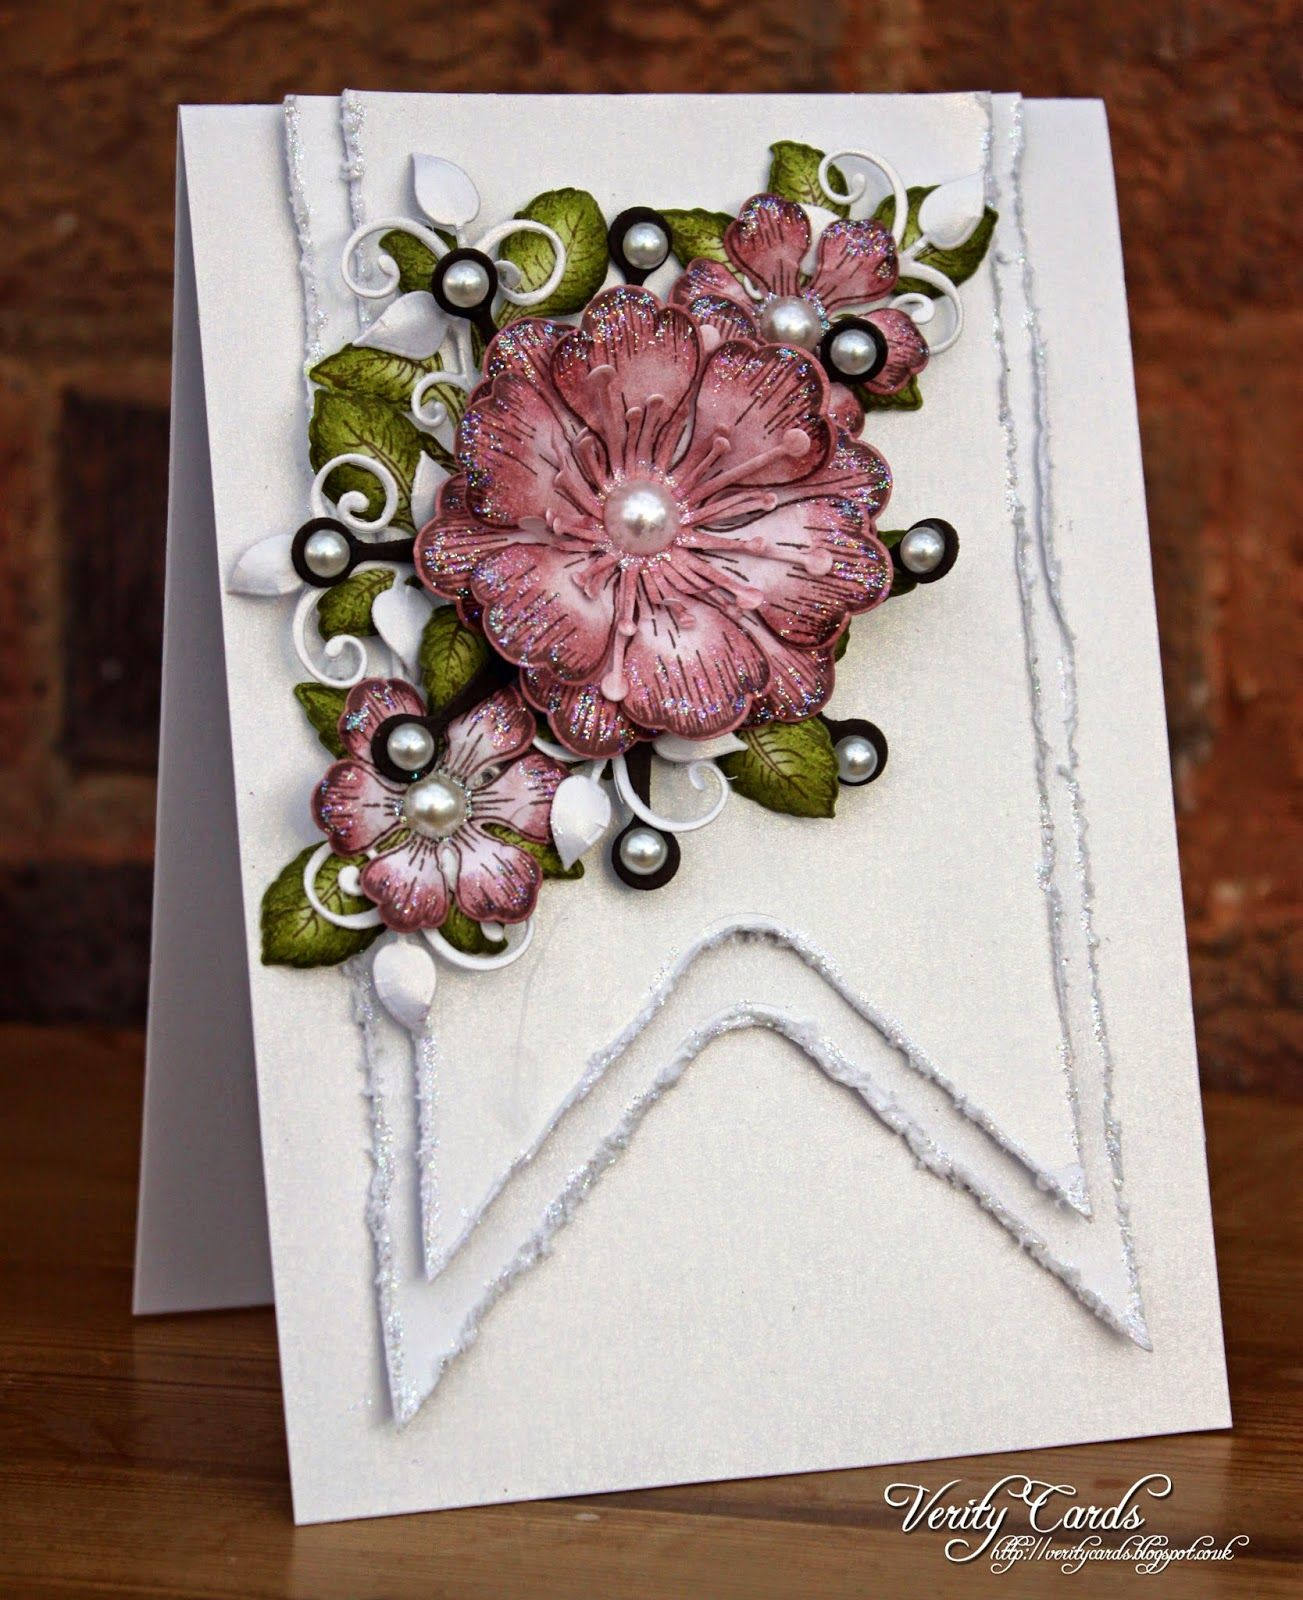 Card Made Using The Cut Mat Create Dies To Make The Banners And